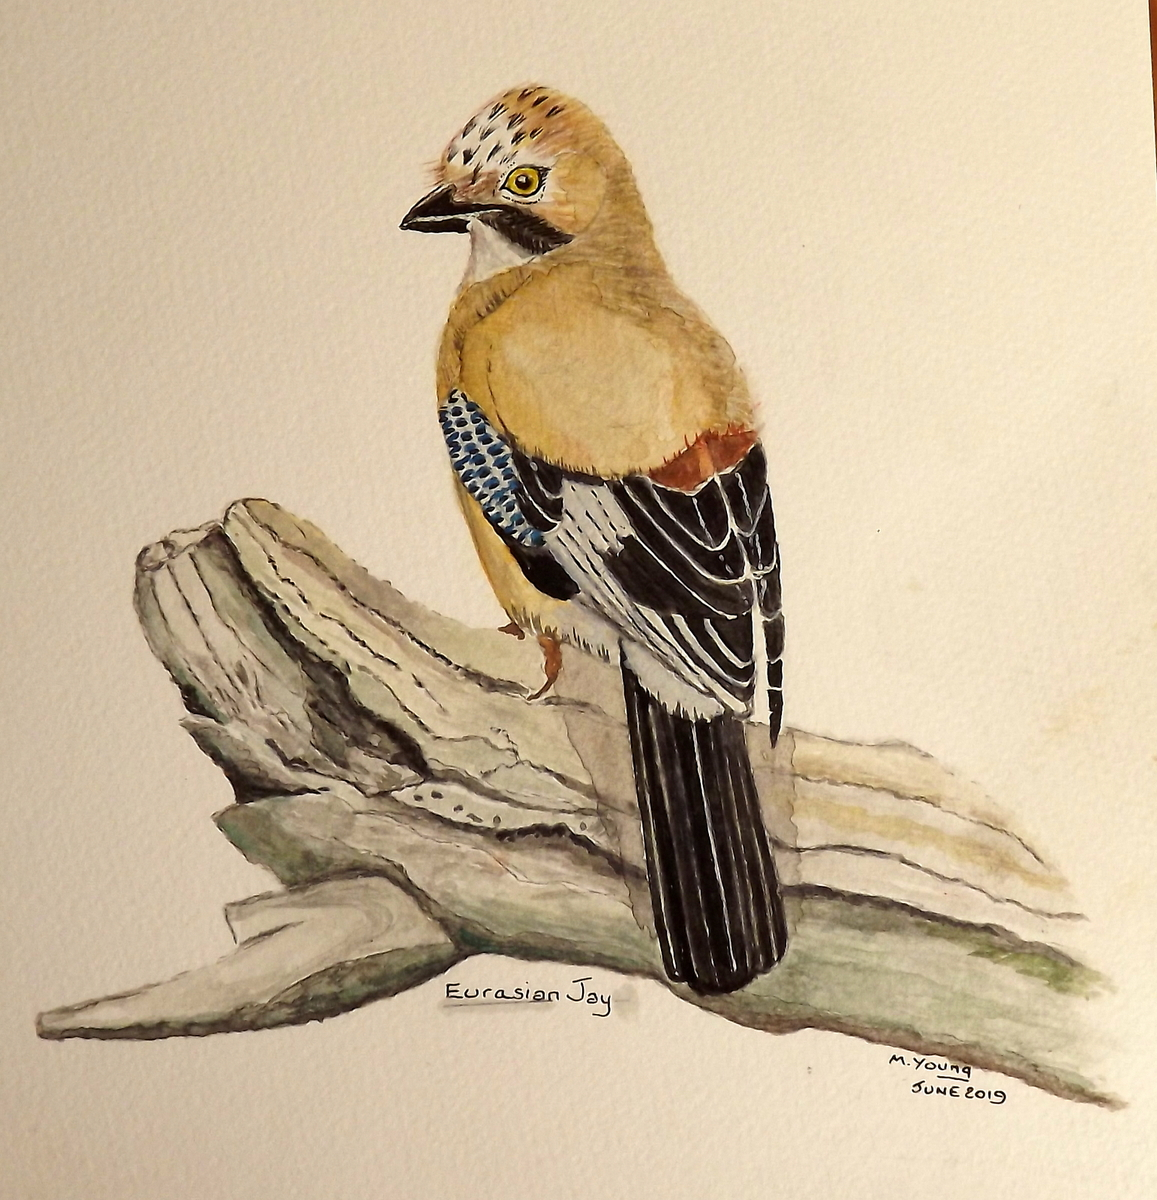 The Jay - by Mike Young